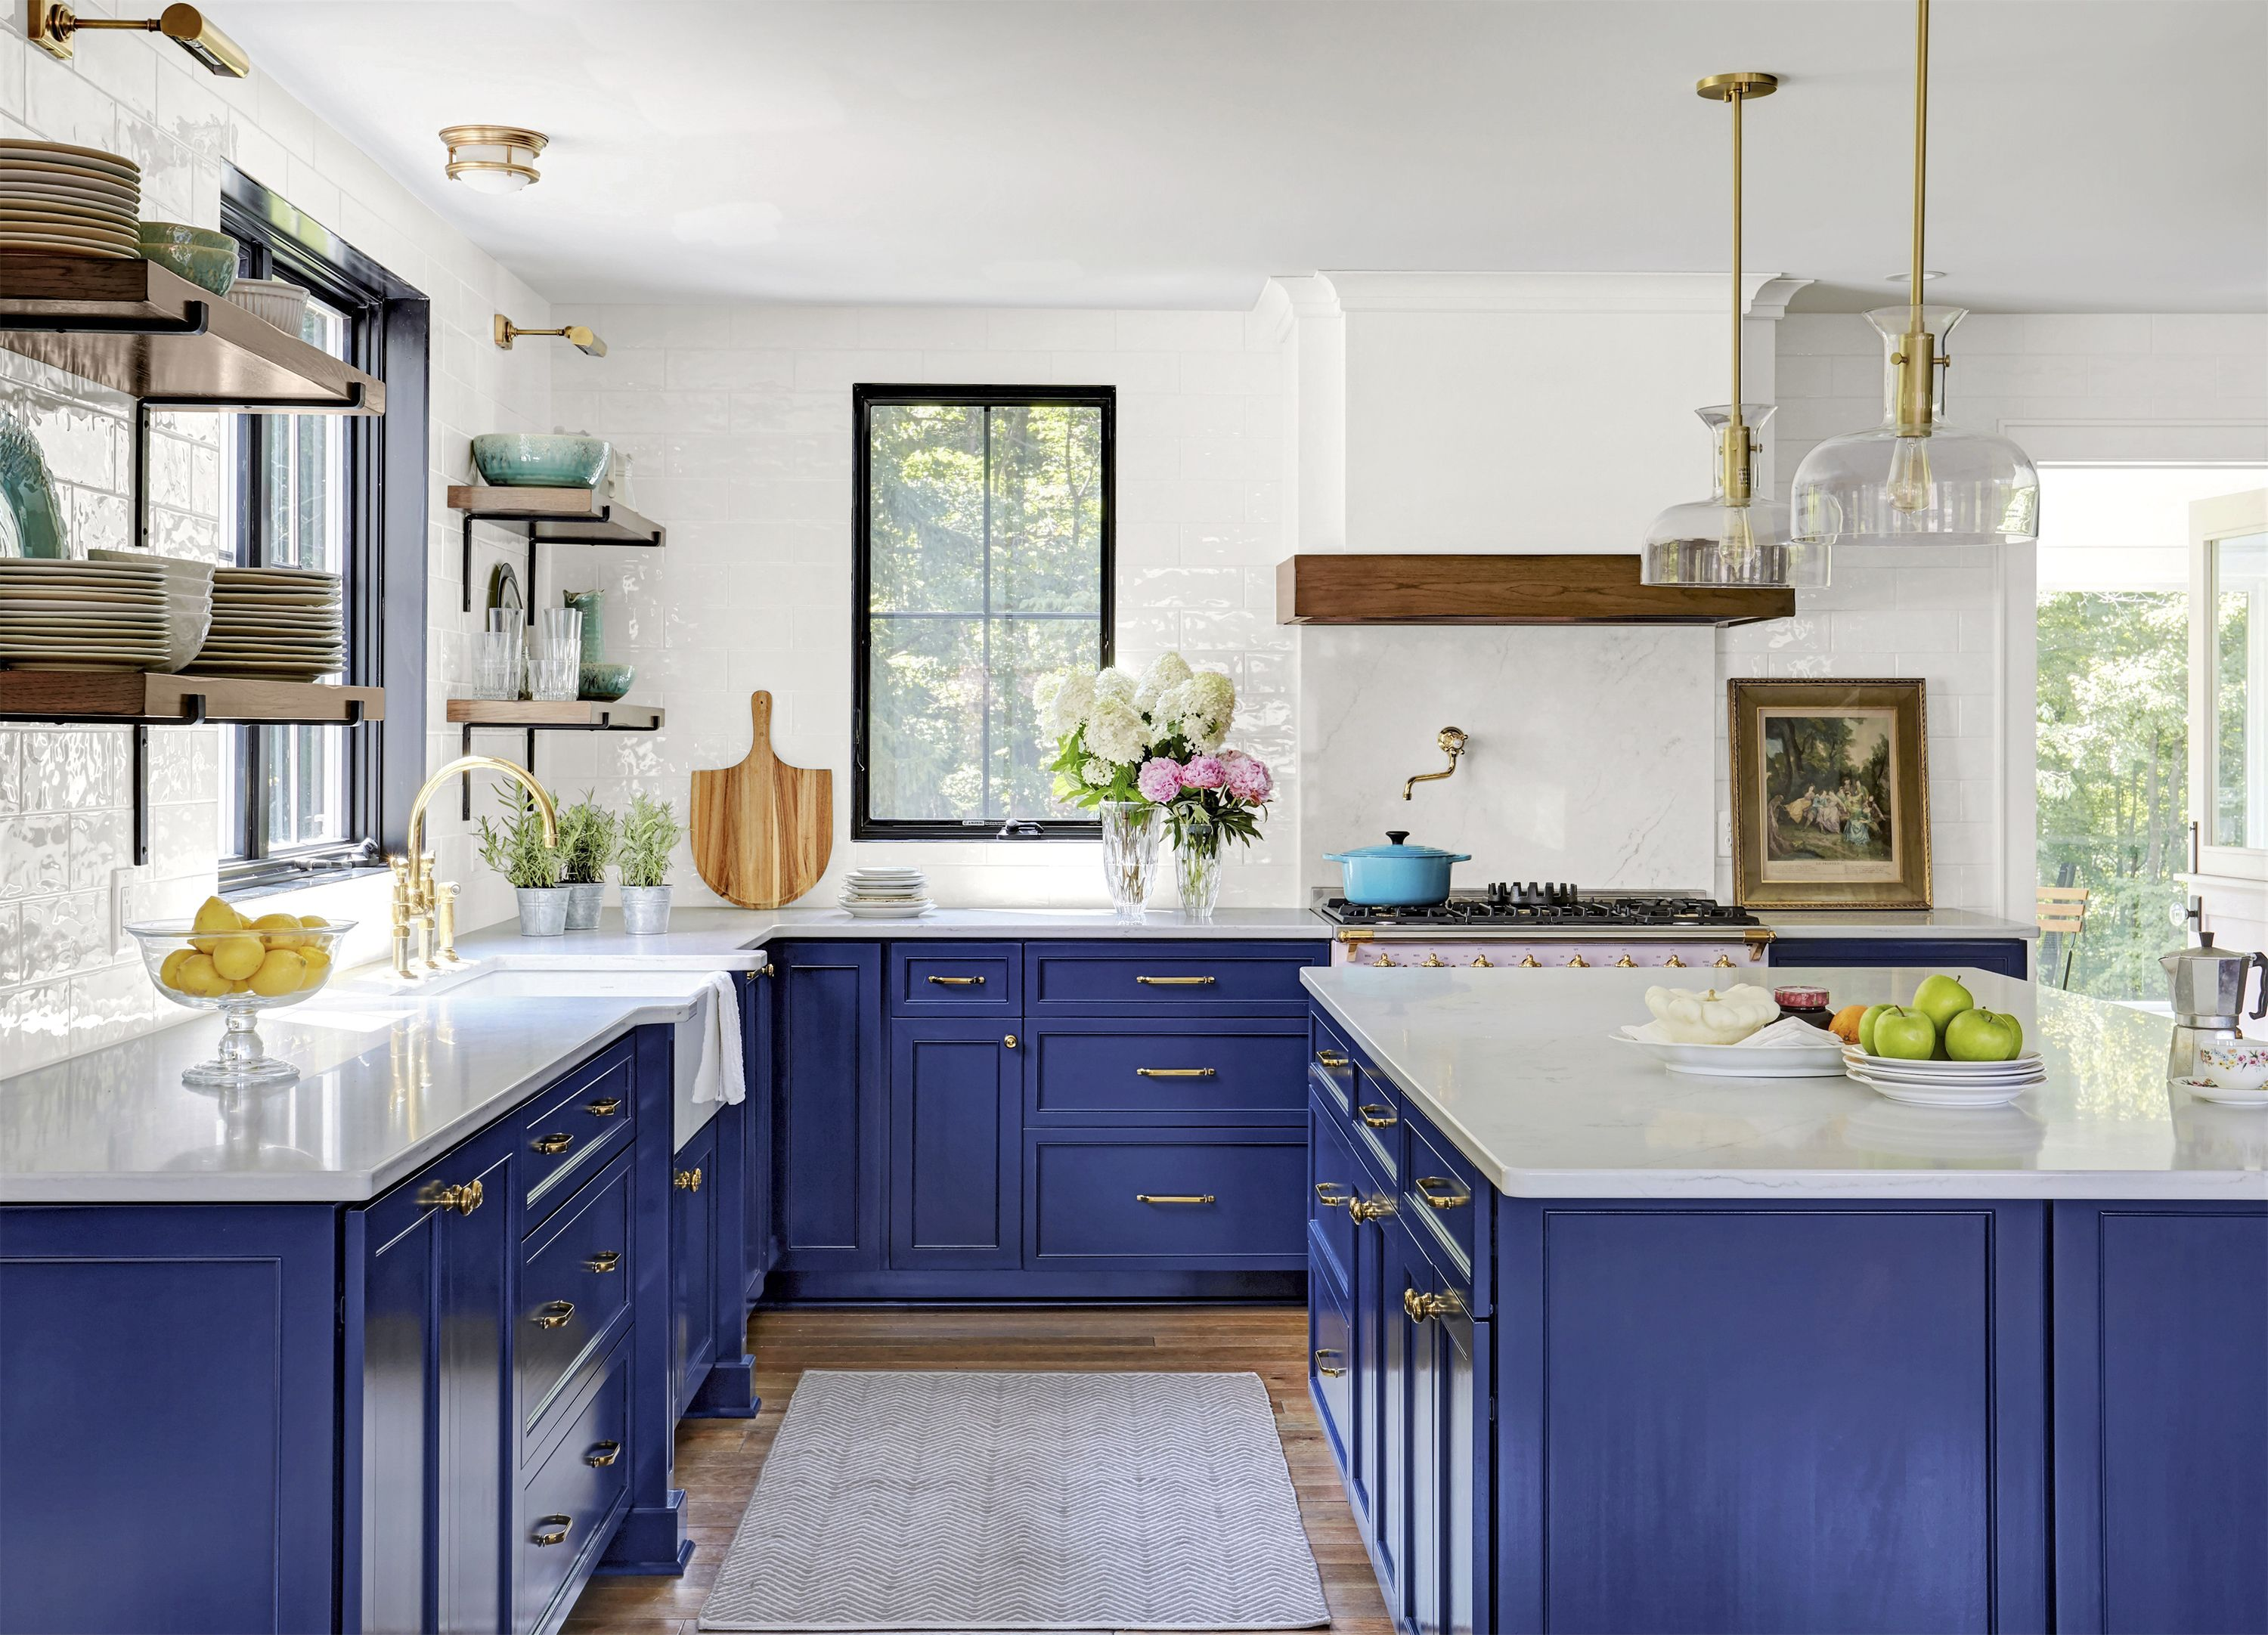 Examples of what the interior of the kitchen should look like